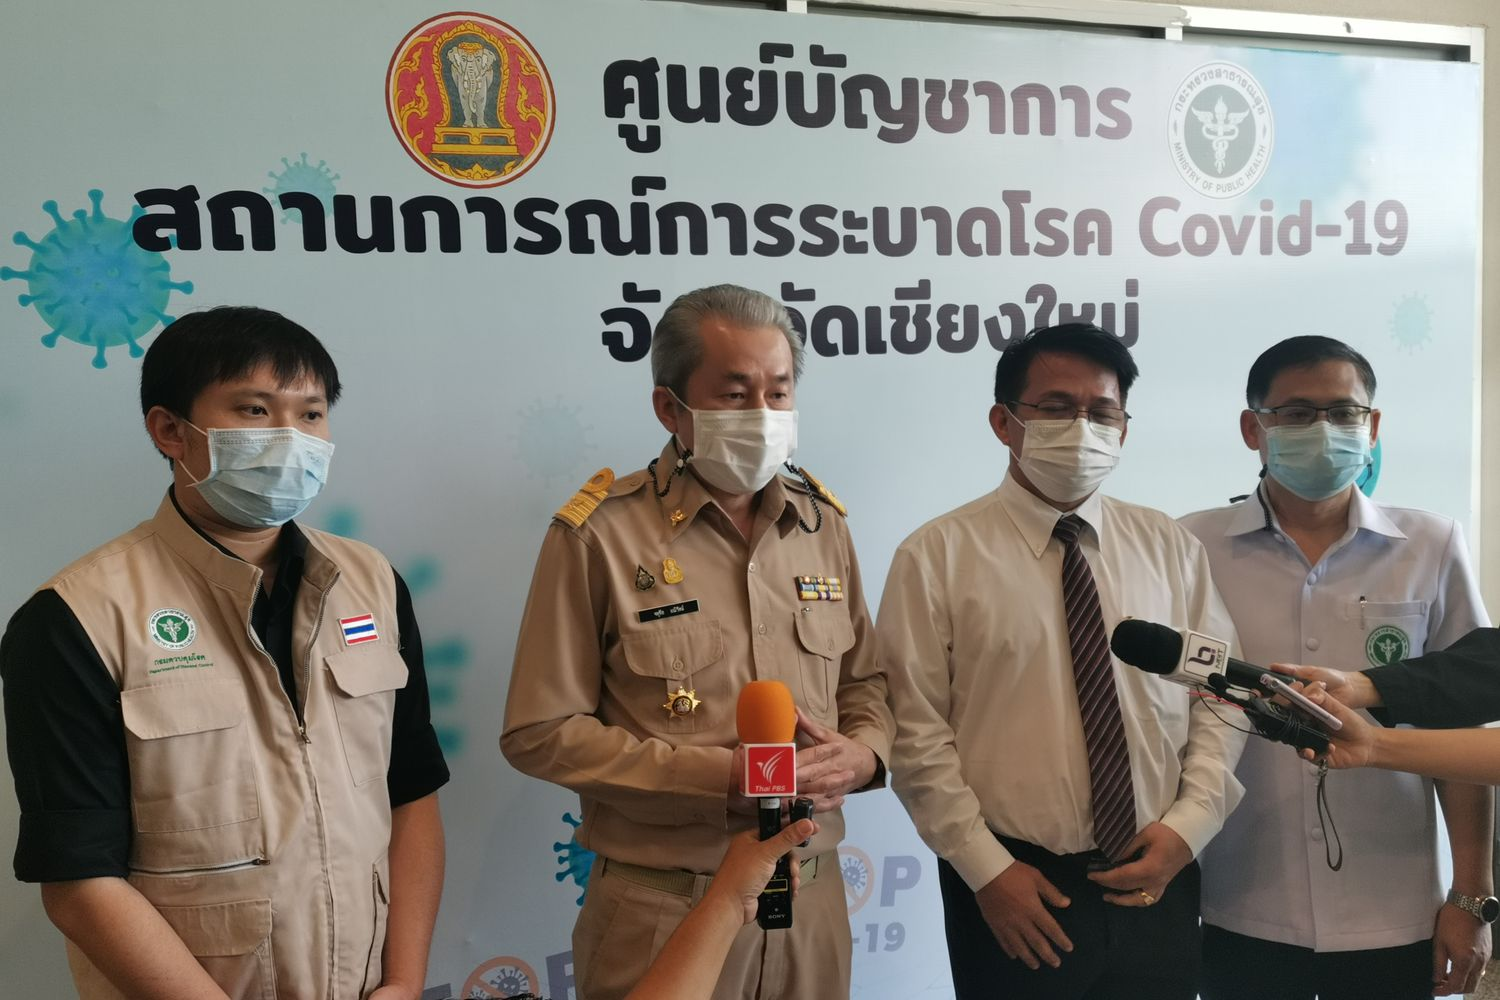 Dr Chatuchai Maneerat (centre), chief public health executive of Chiang Mai province, together with other health personnel, updates the situation in the province on Monday. (Photo supplied by Panumet Tanraksa)